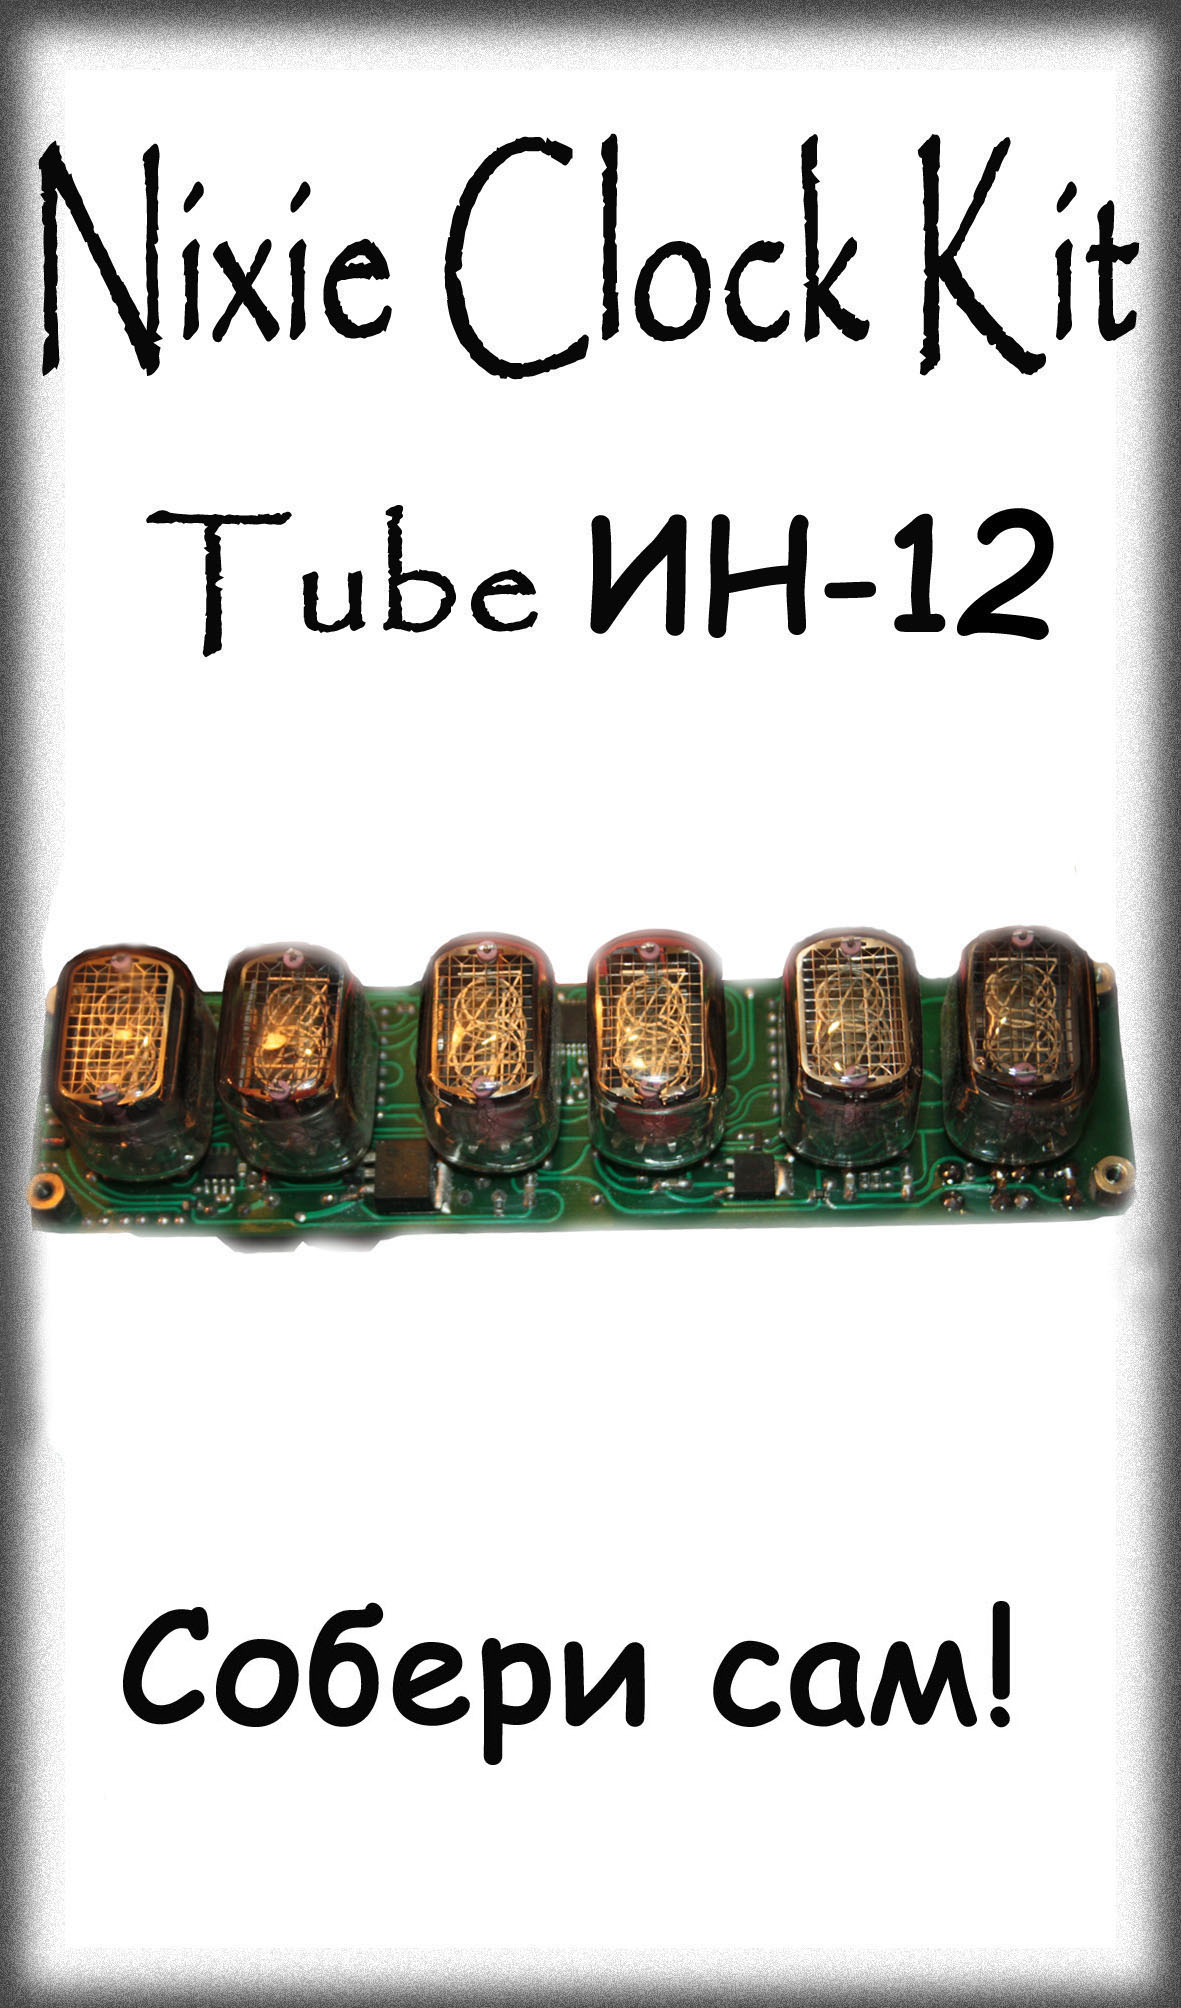 Nixie Clock Kit IN12 Tube